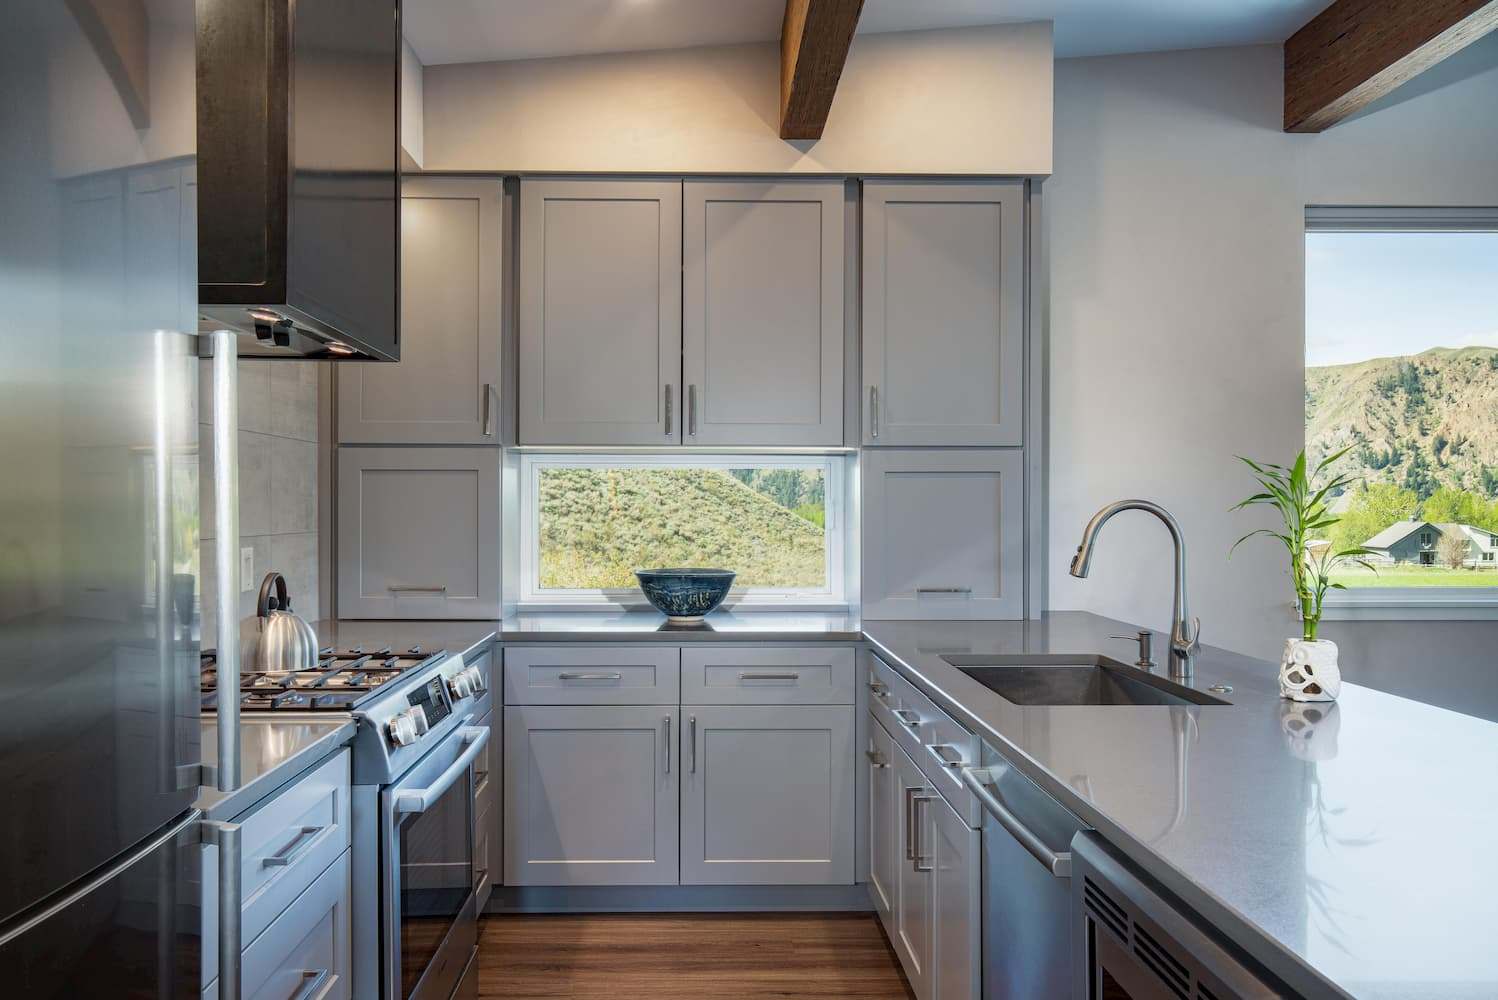 Modern kitchen of Hailey home complete with small Pella window